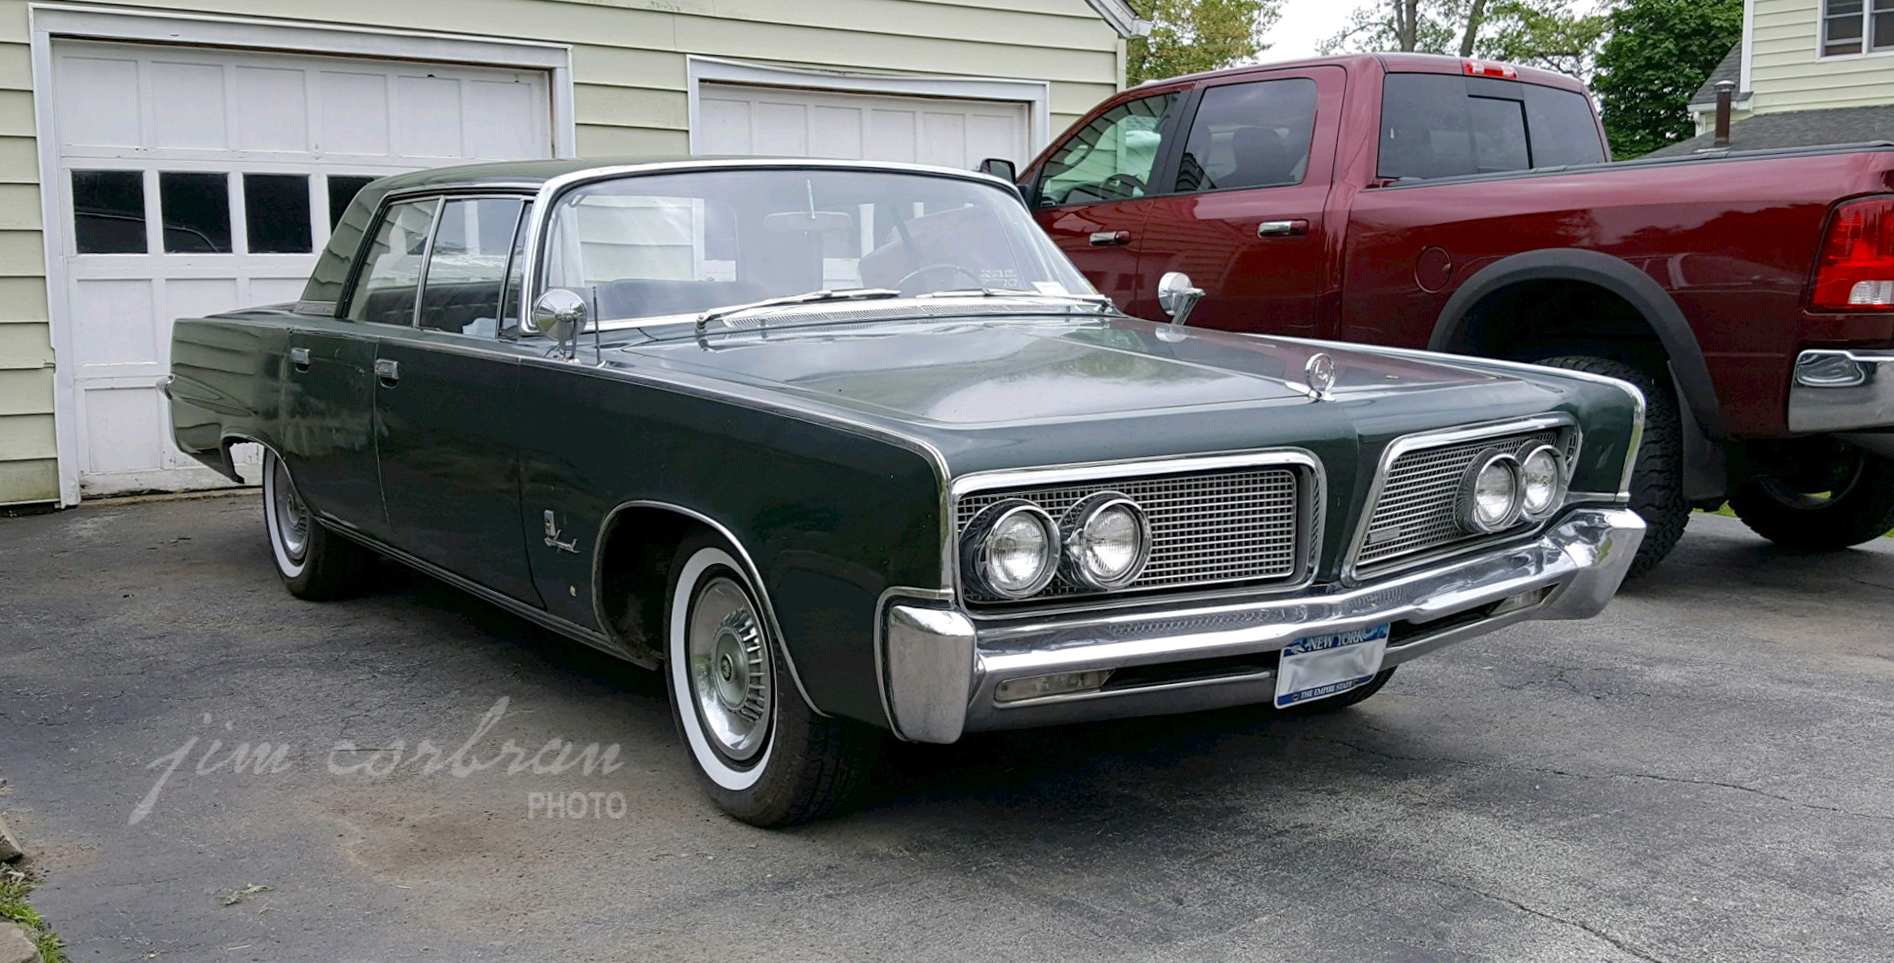 RealRides of WNY - 1964 Imperial